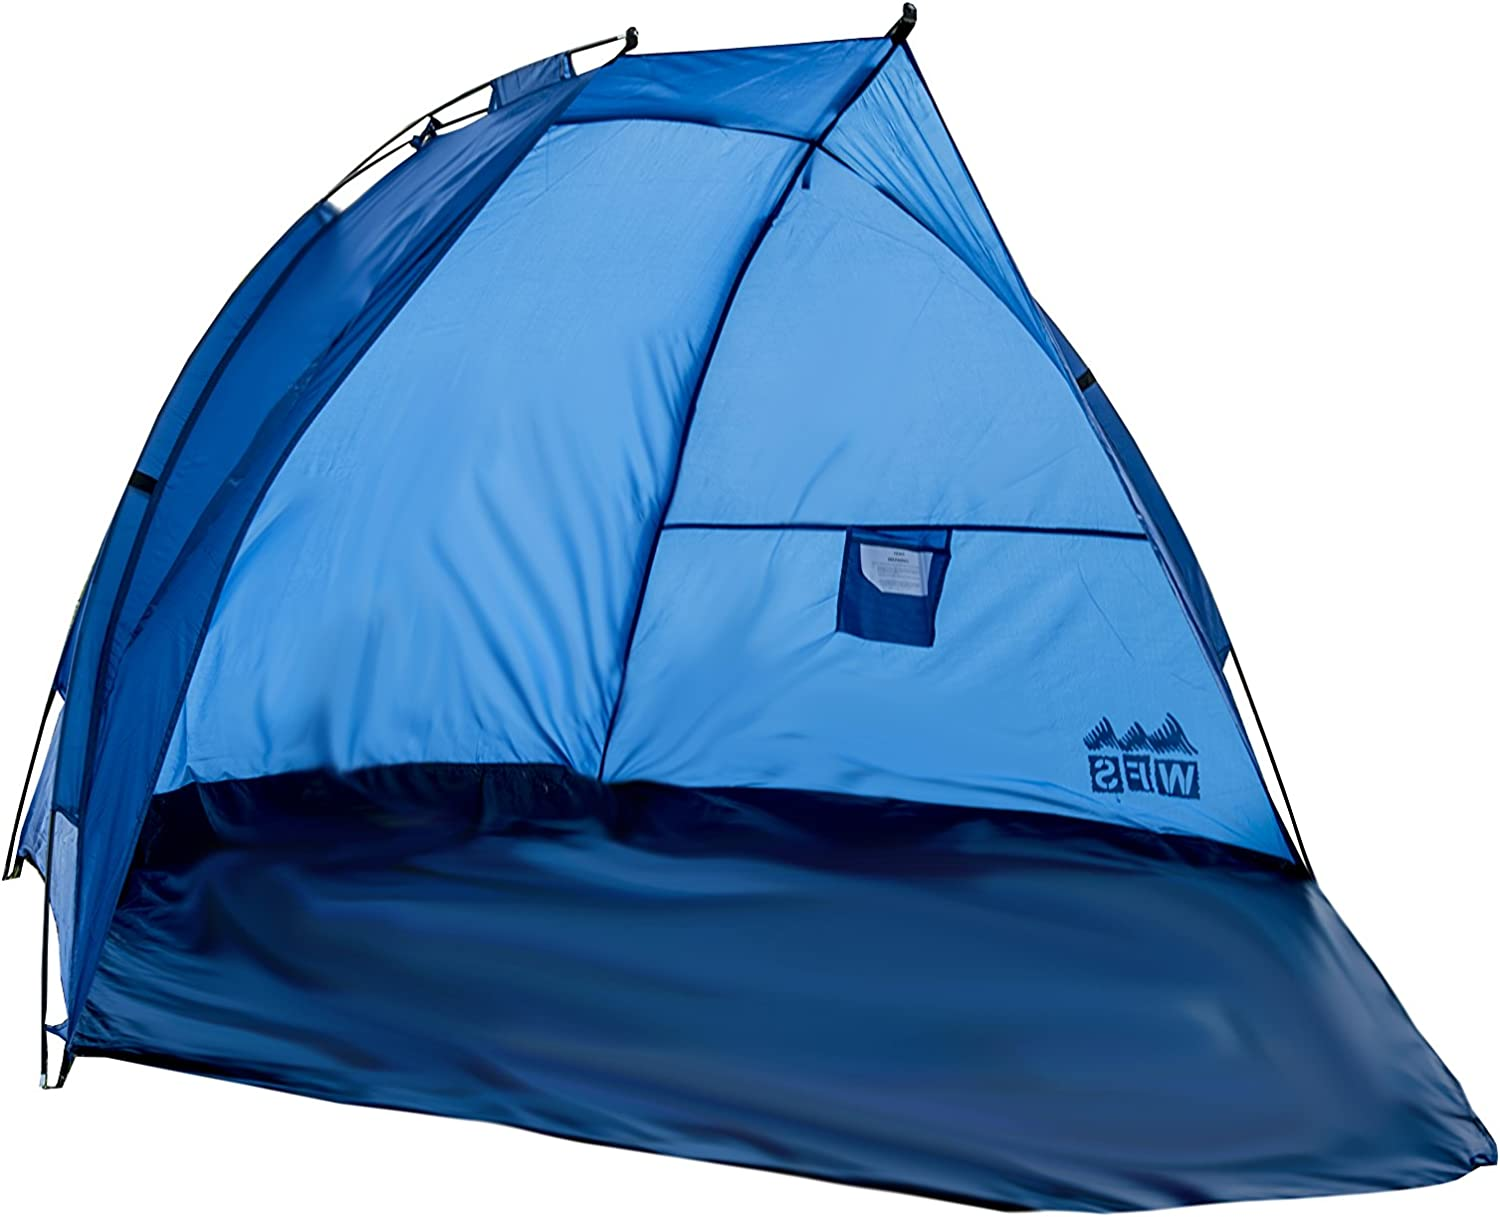 WFS Sun Shelter All stores Ranking TOP6 are sold Canopy Blue Beach